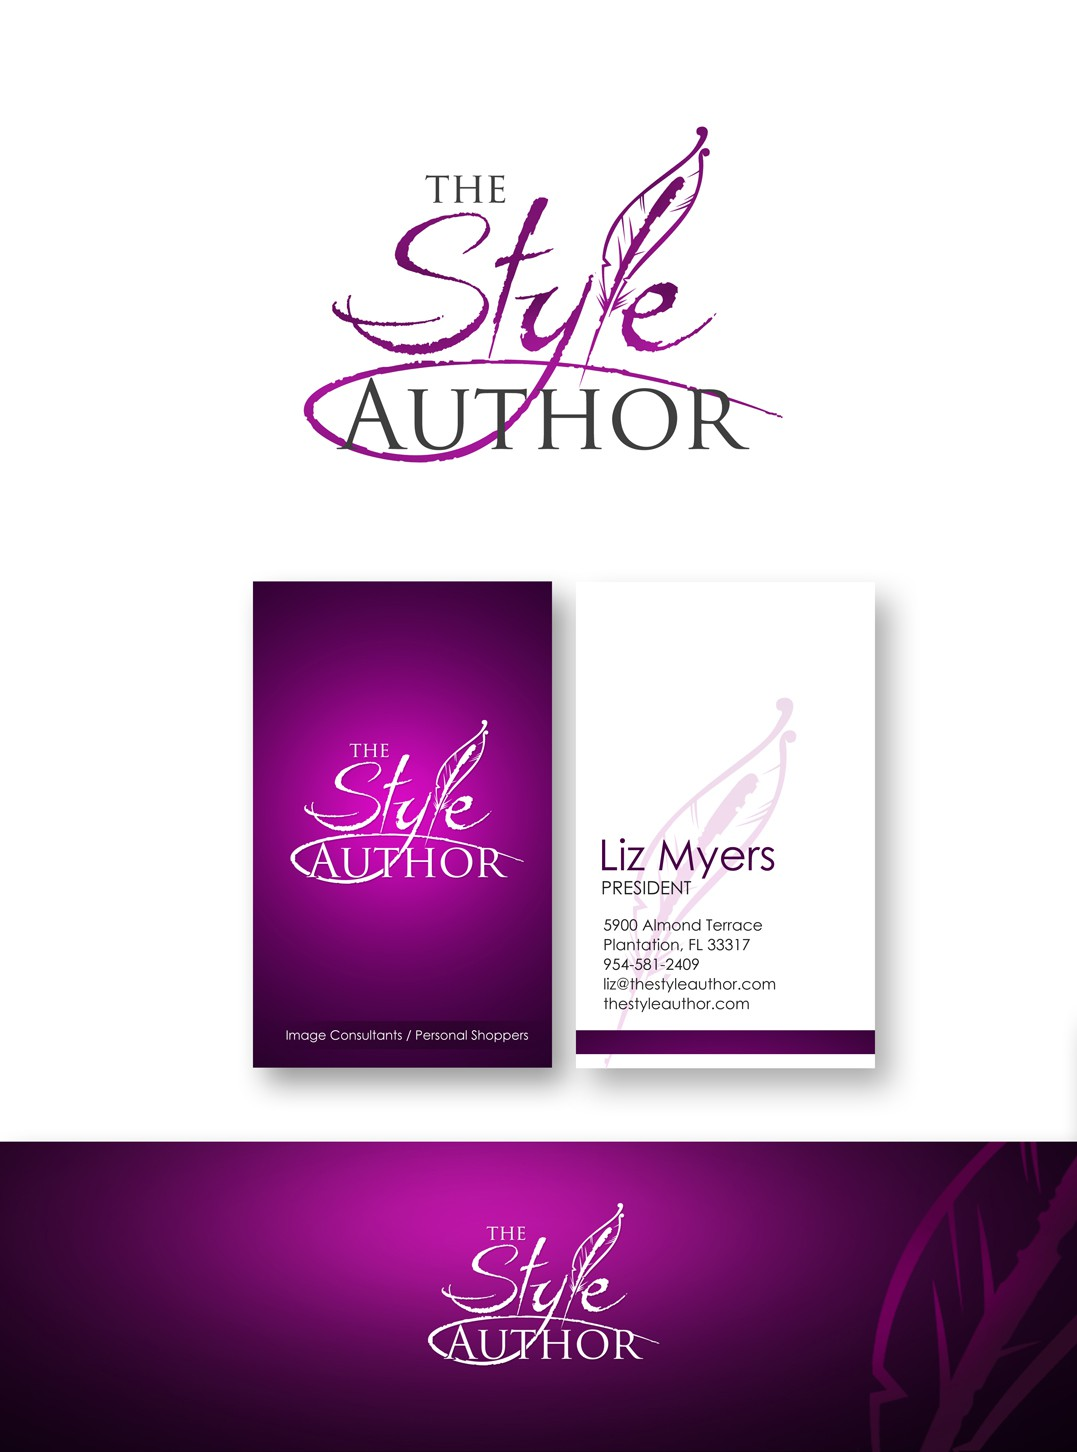 New logo wanted for The Style Author